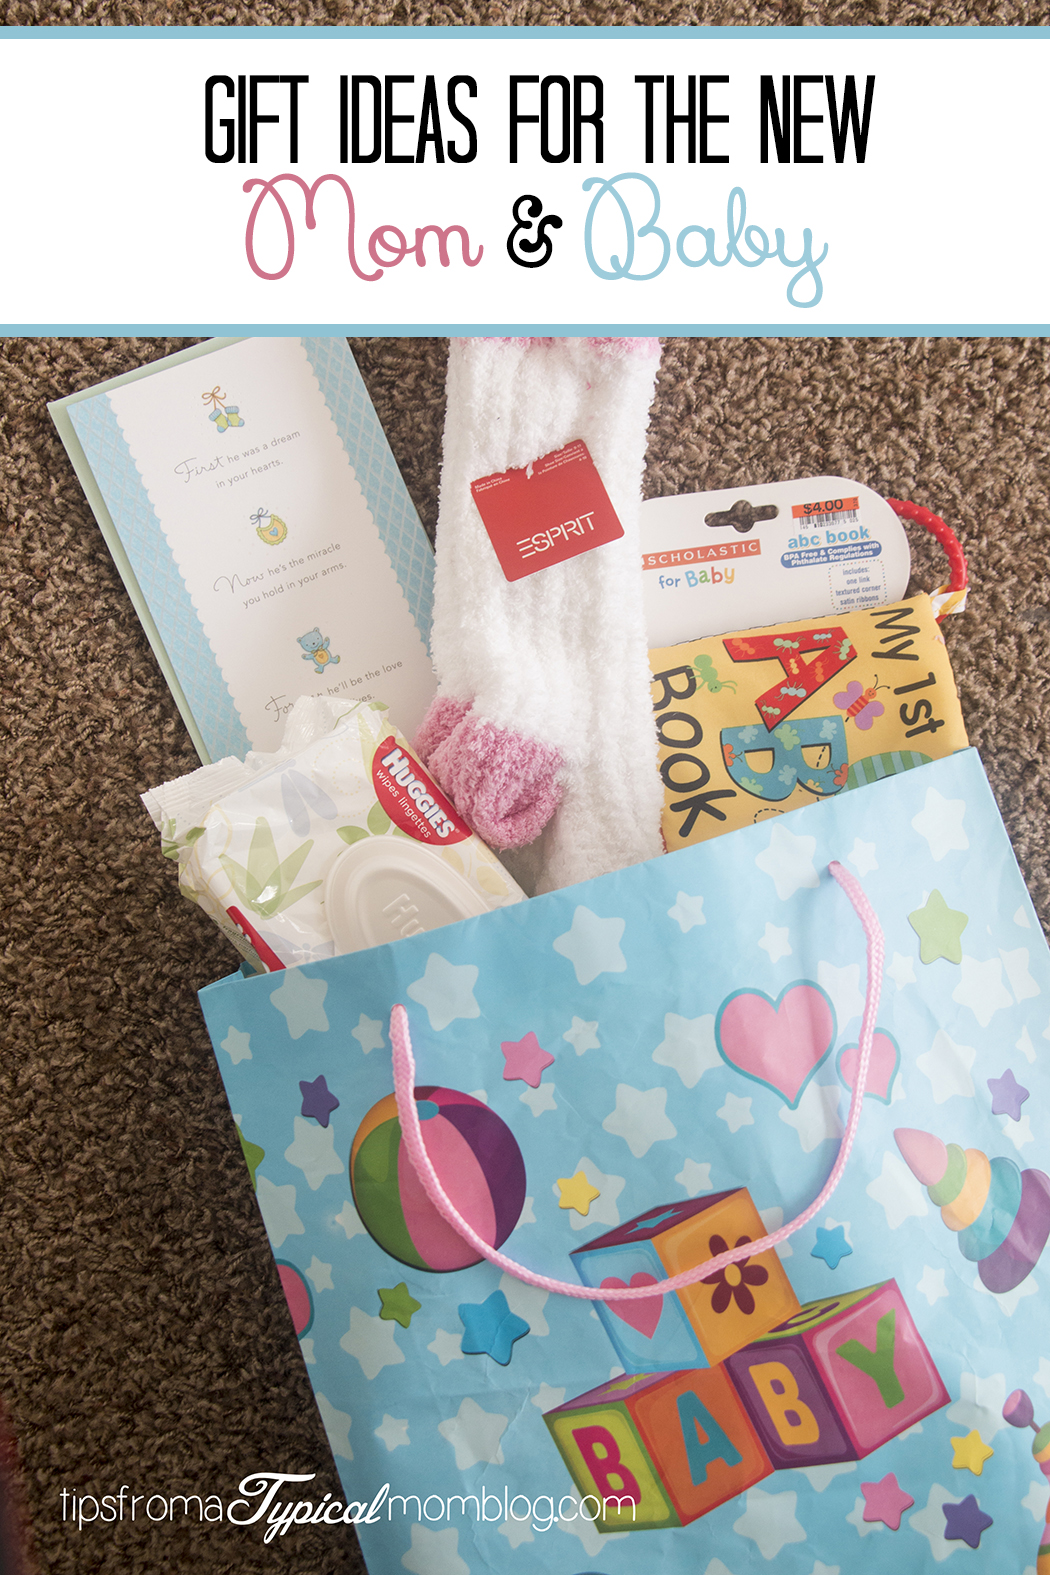 Baby Gift For Mum : Gift ideas for the new mom and baby tips from a typical